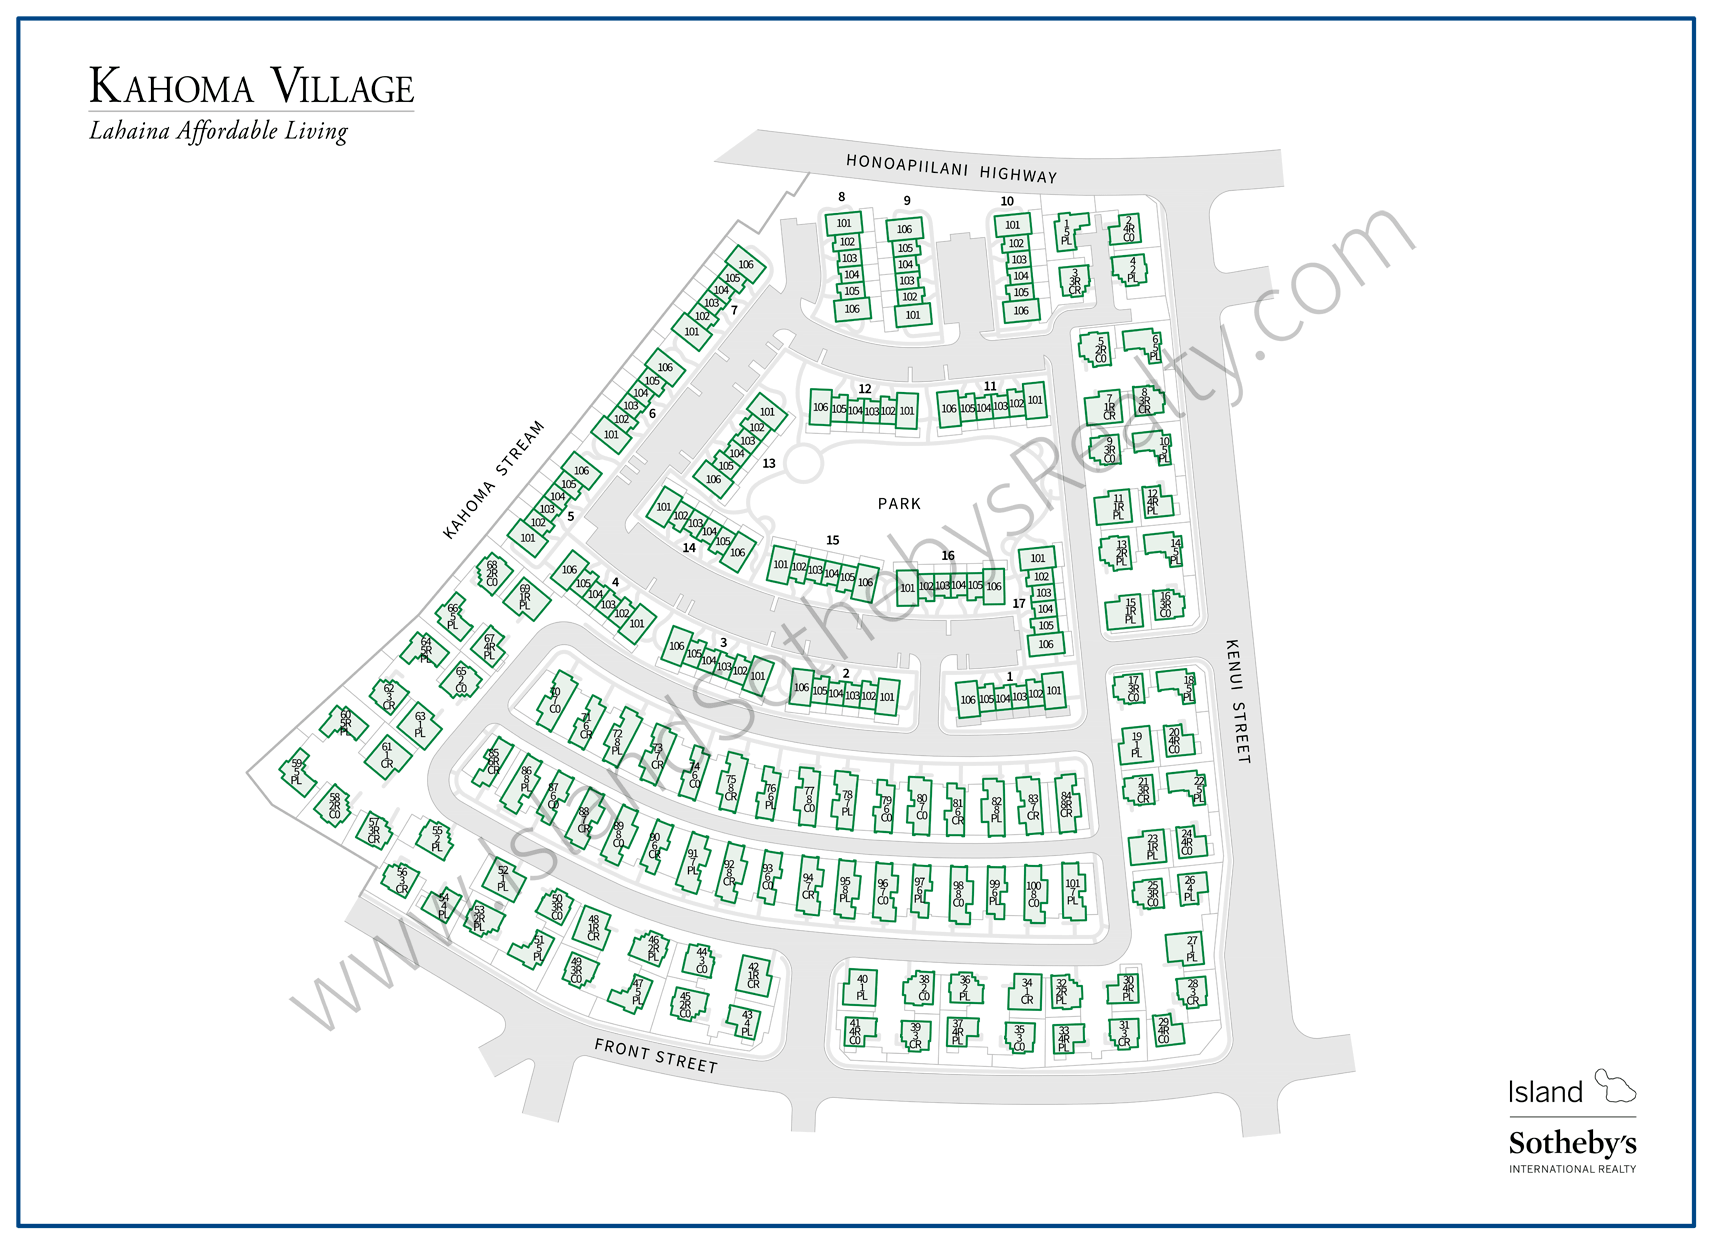 Map of Kahoma Village Maui